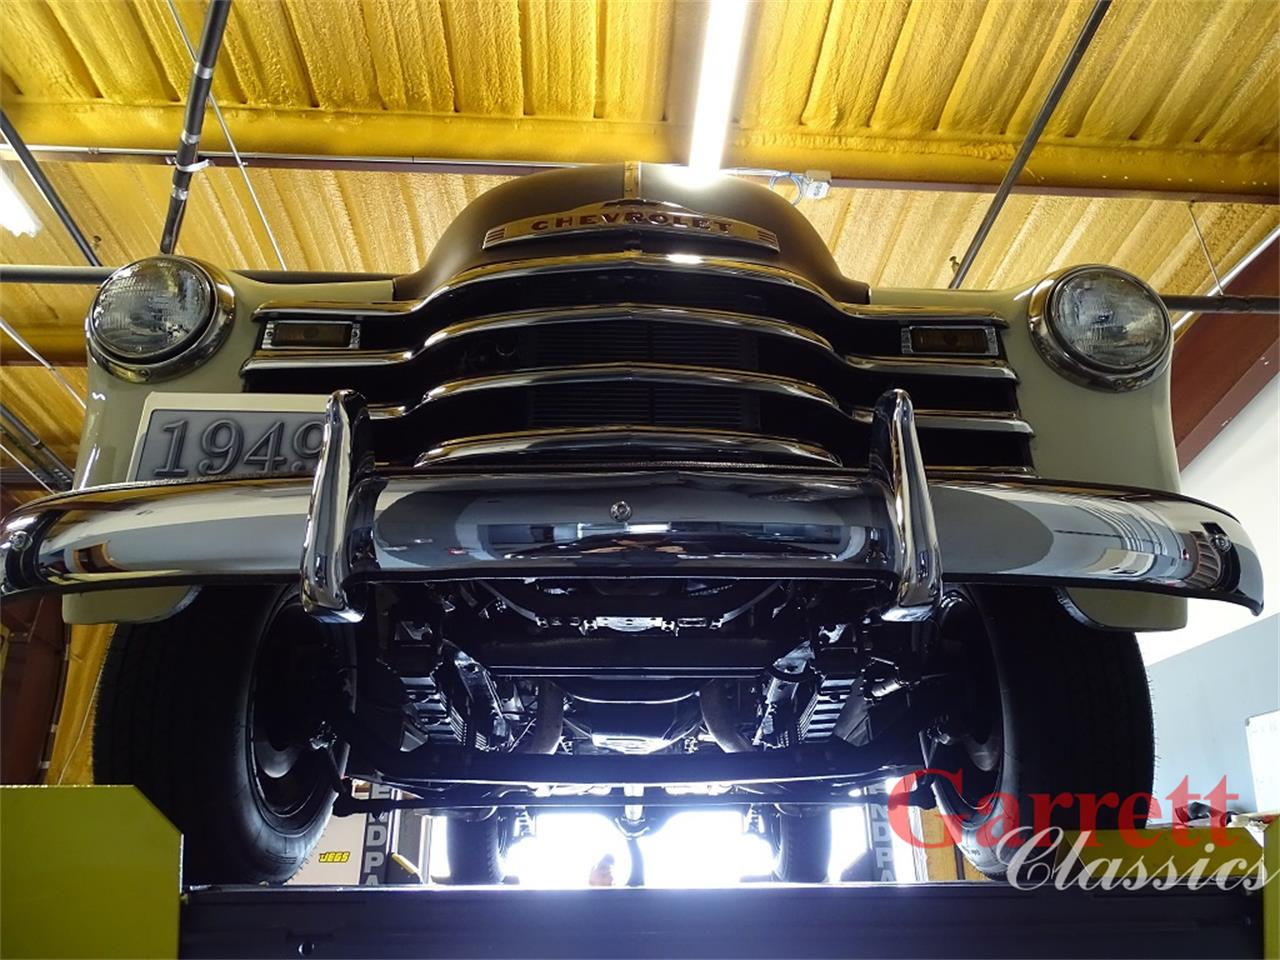 Large Picture of '49 3100 located in TEXAS (TX) - $30,000.00 Offered by Garrett Classics - PXAC